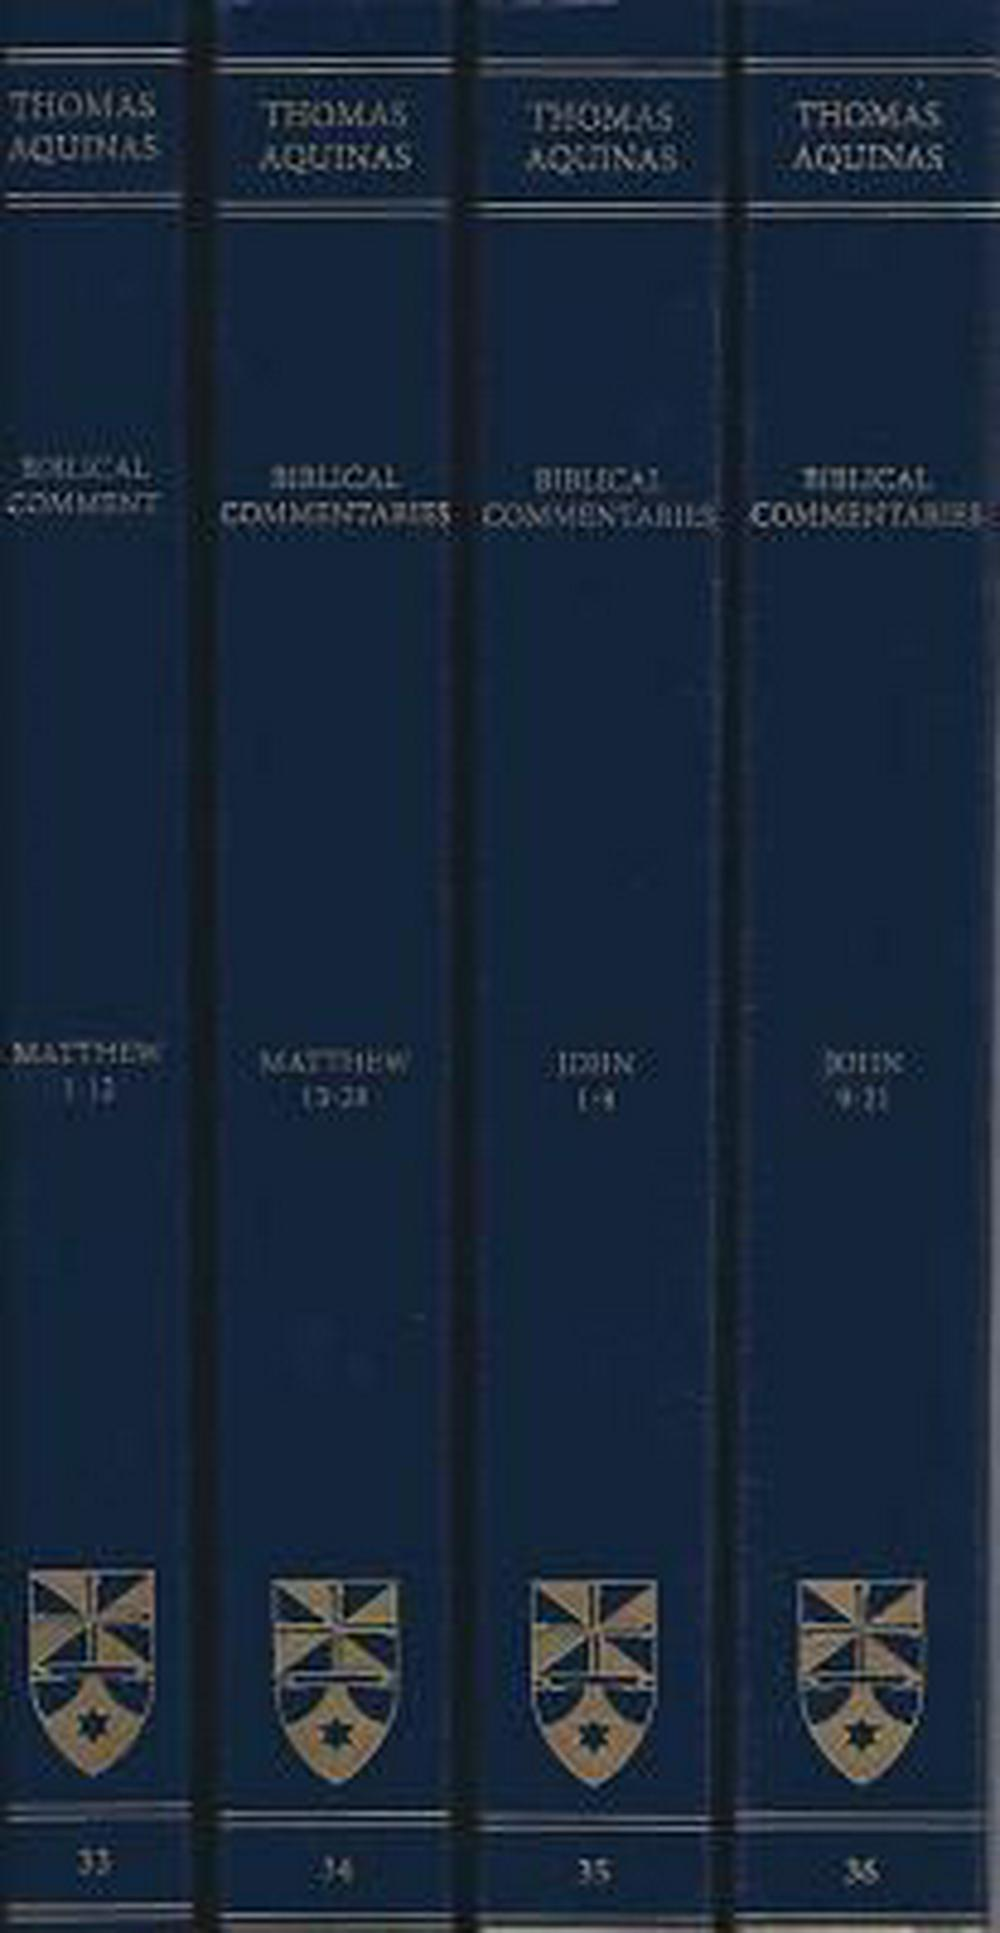 Commentary on the Gospels of Matthew and John (Latin-English Edition)